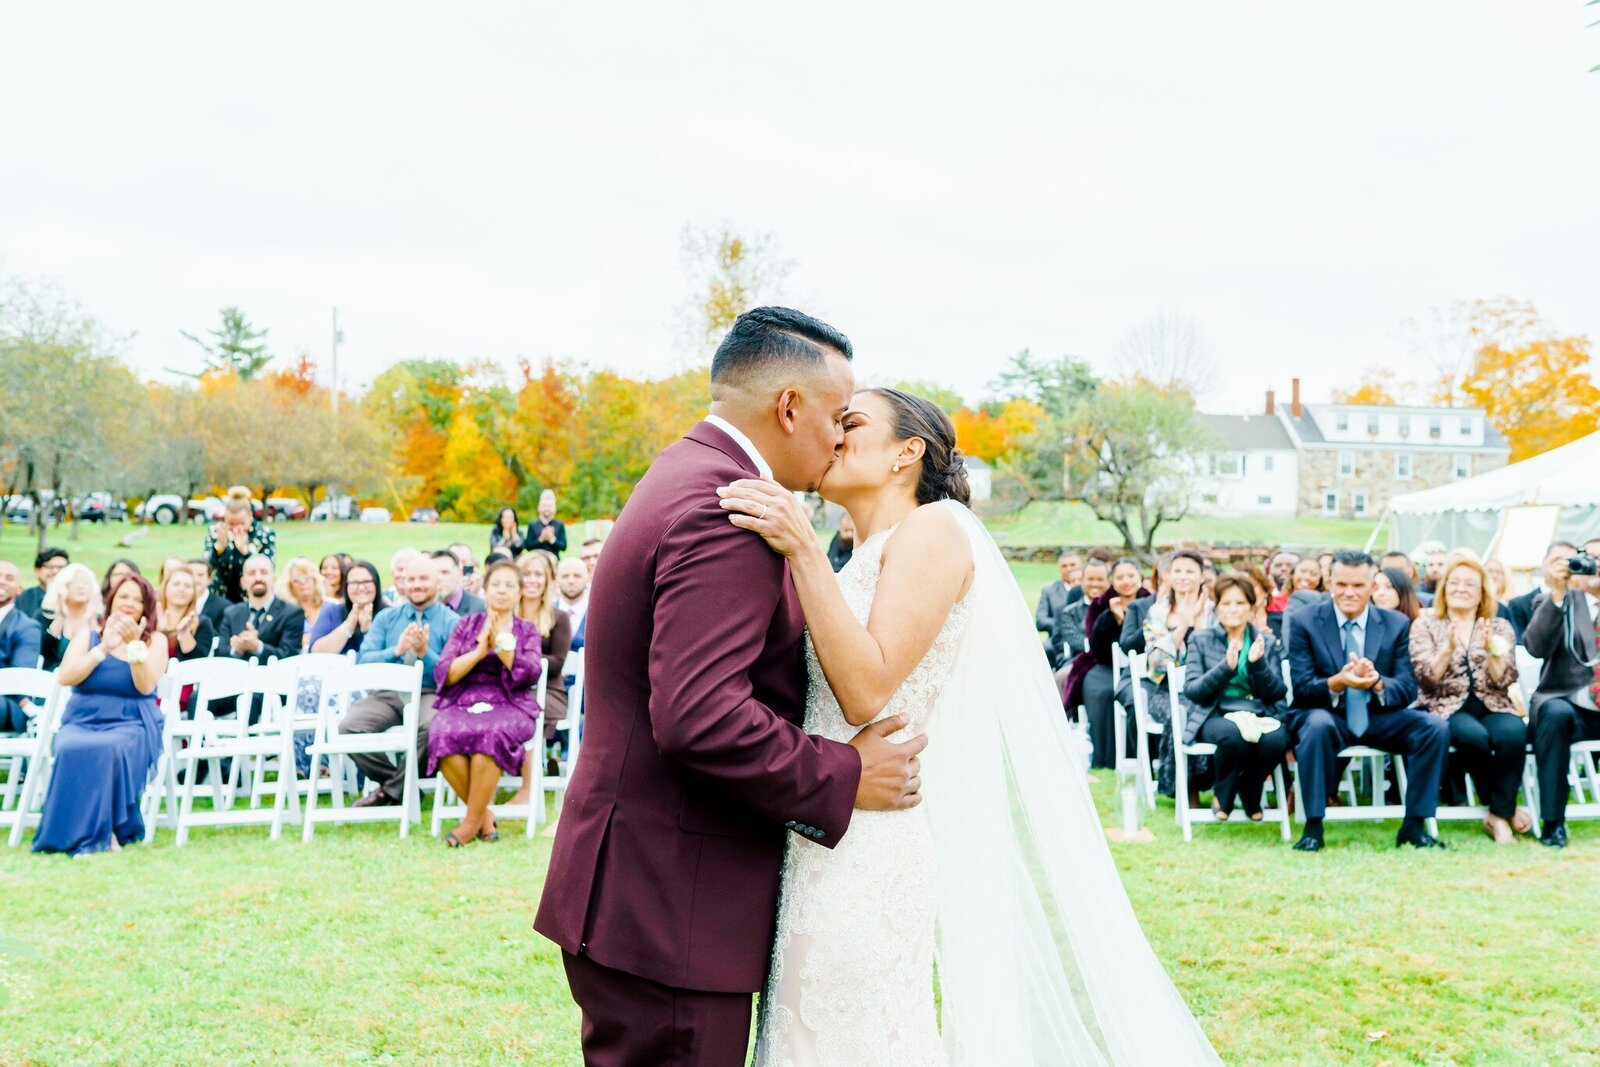 Bride and groom kissing at New Hampshire wedding ceremony